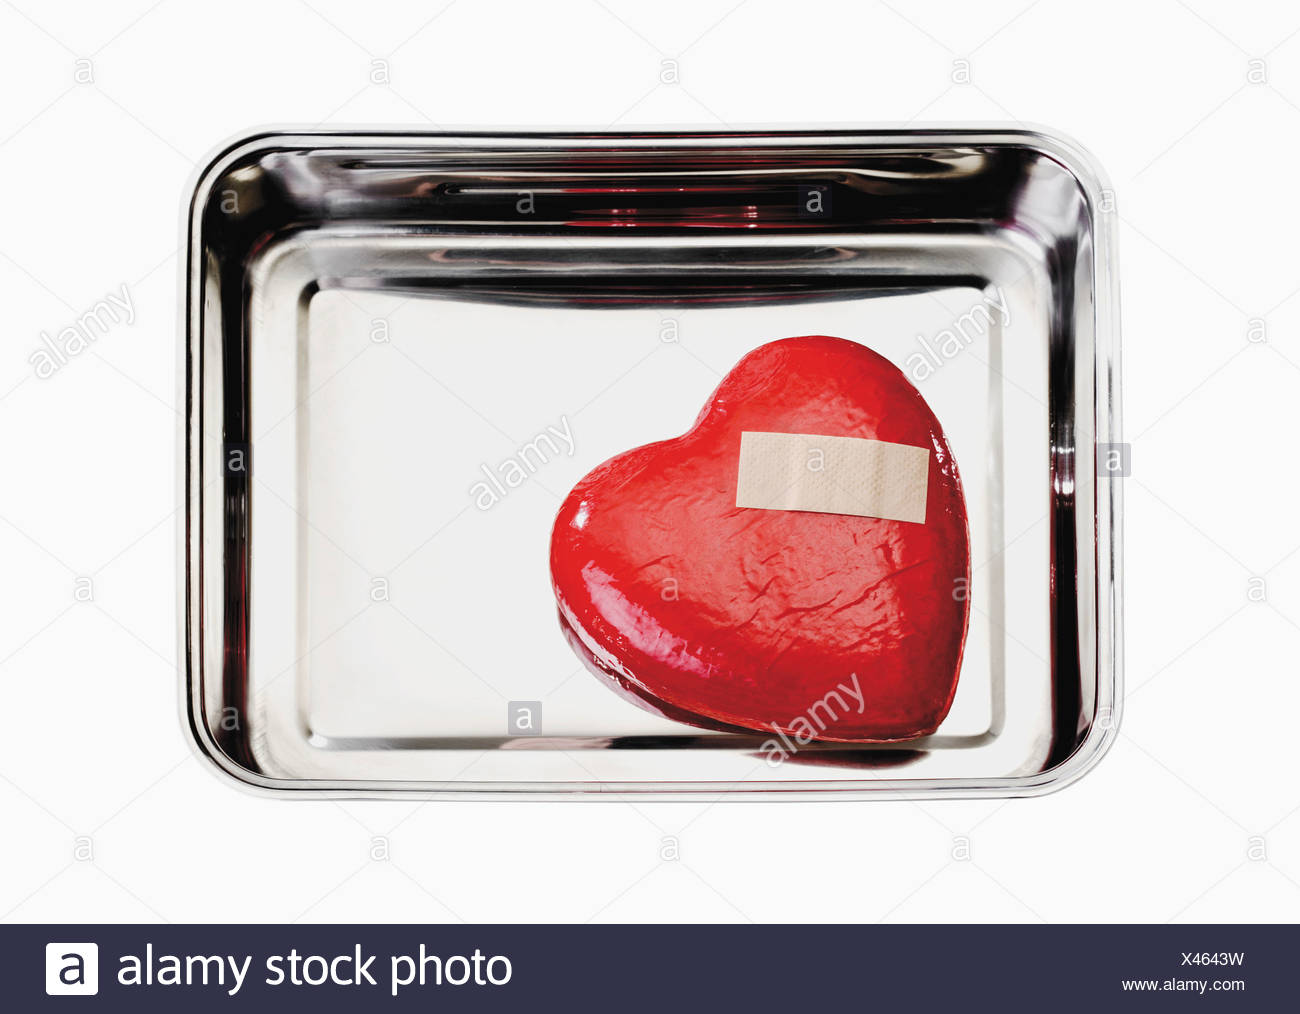 Heart with bandage in tray - Stock Image